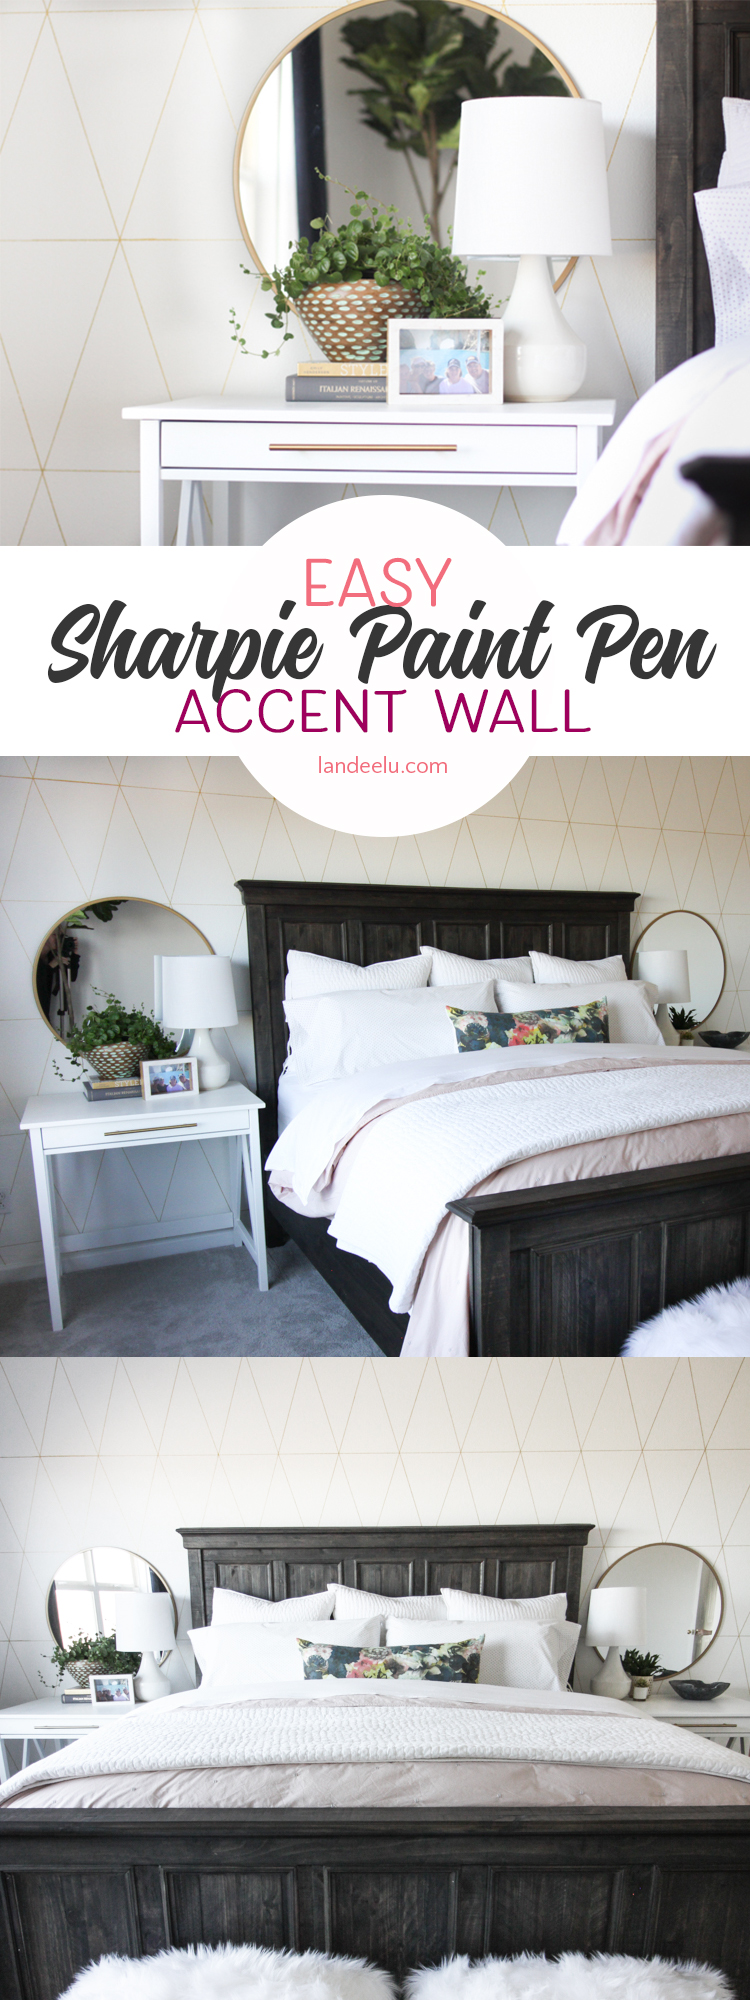 Super easy and fun accent wall idea to liven up a space!